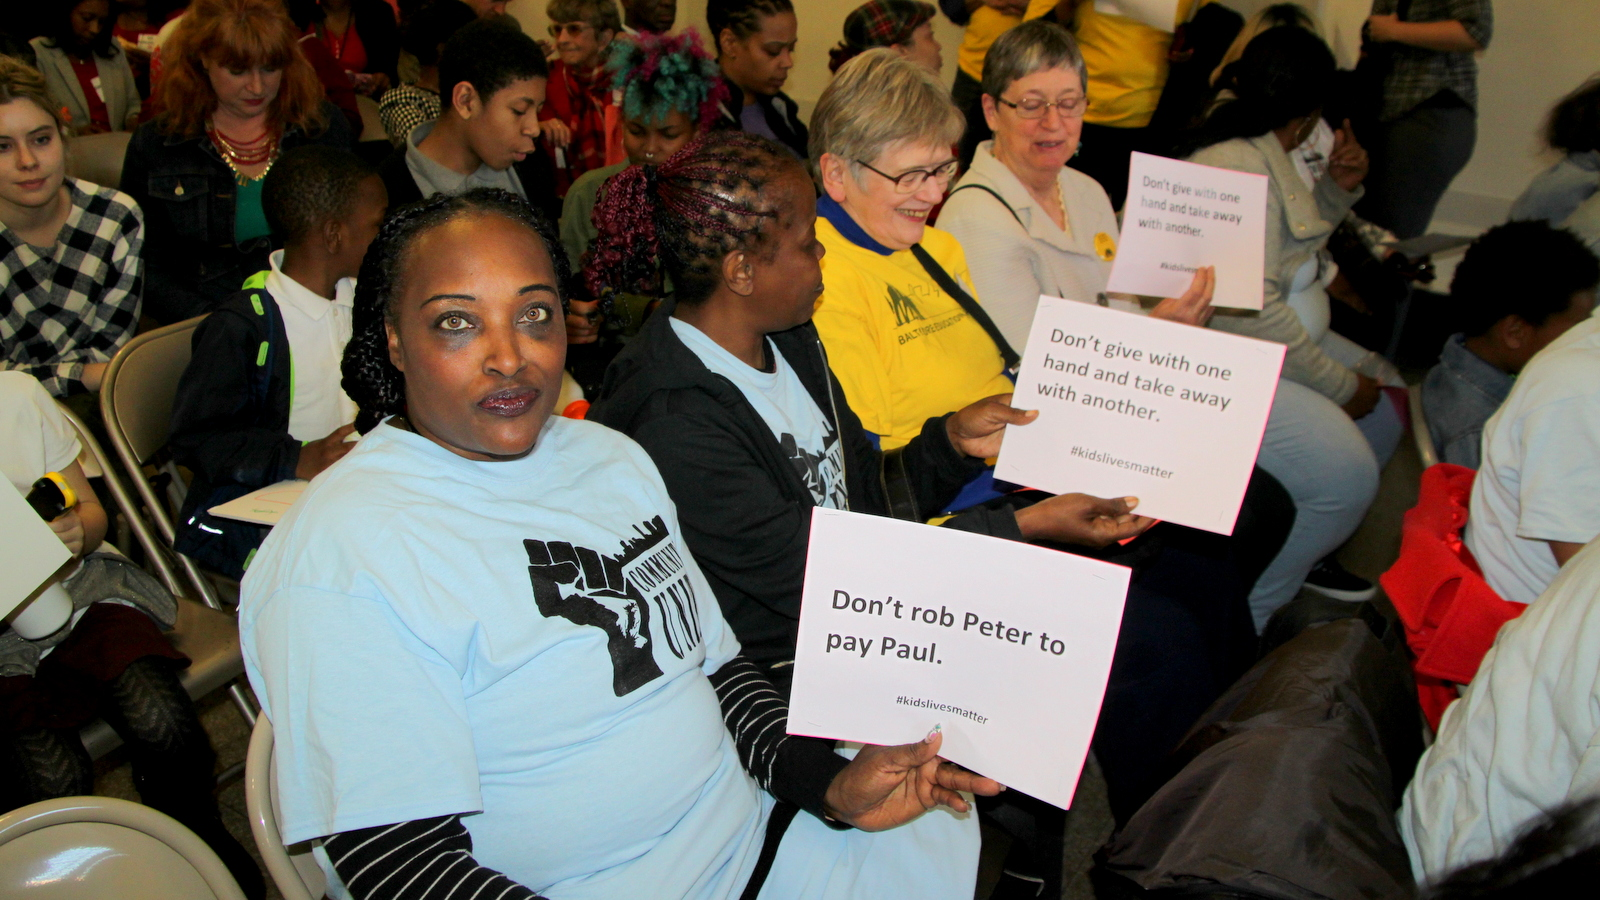 Advocates opposing cuts in funding for education and after-school programs. (Fern Shen)